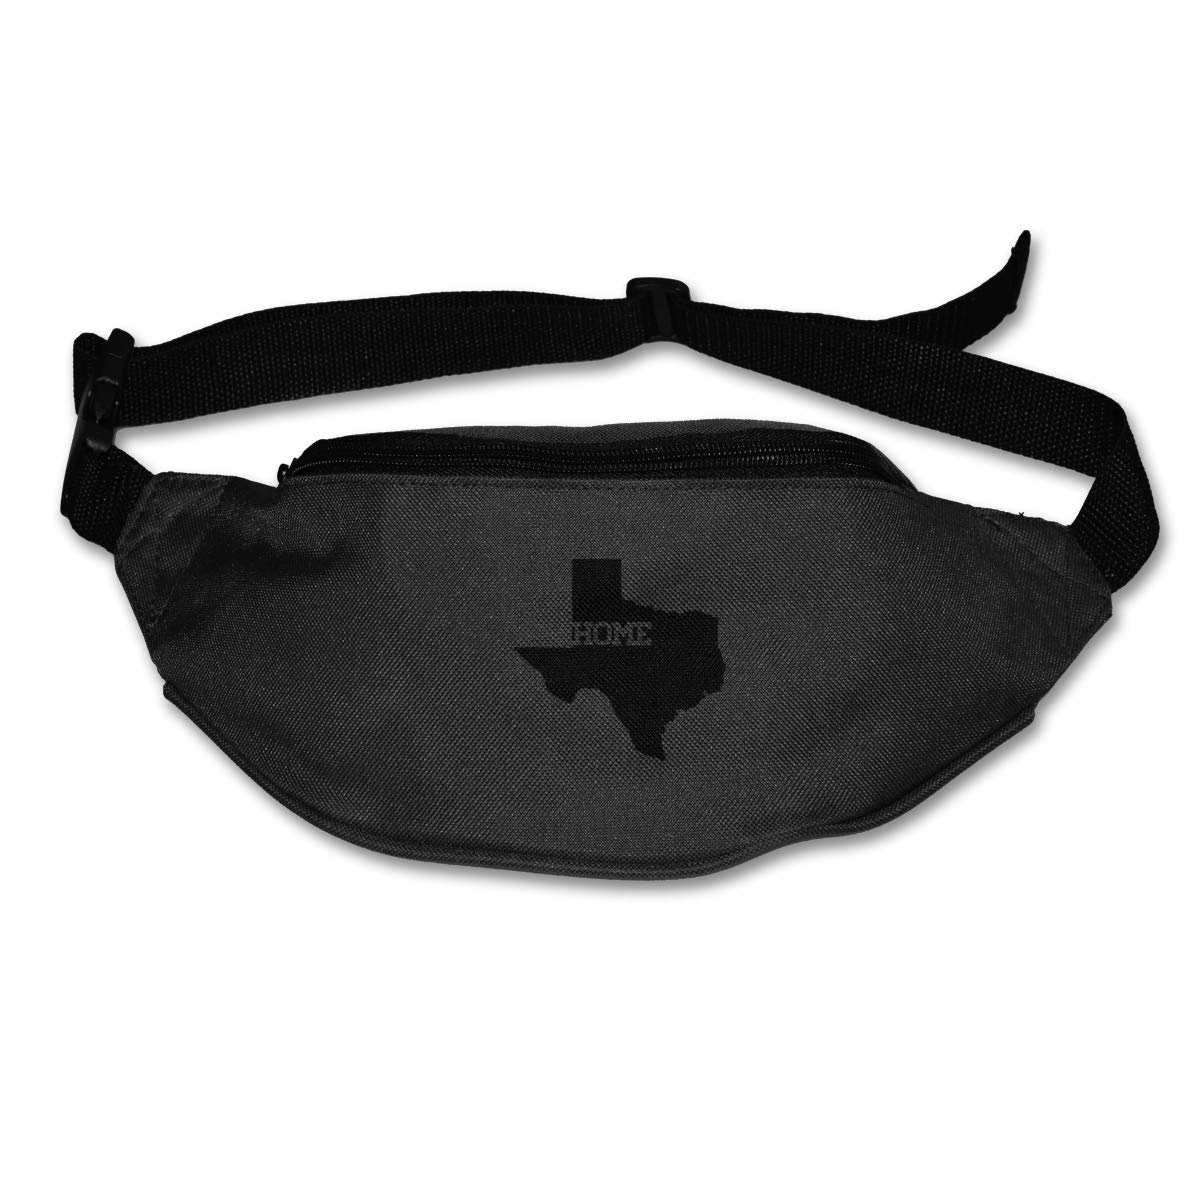 Texas Star State Home Sport Waist Bag Fanny Pack Adjustable For Run